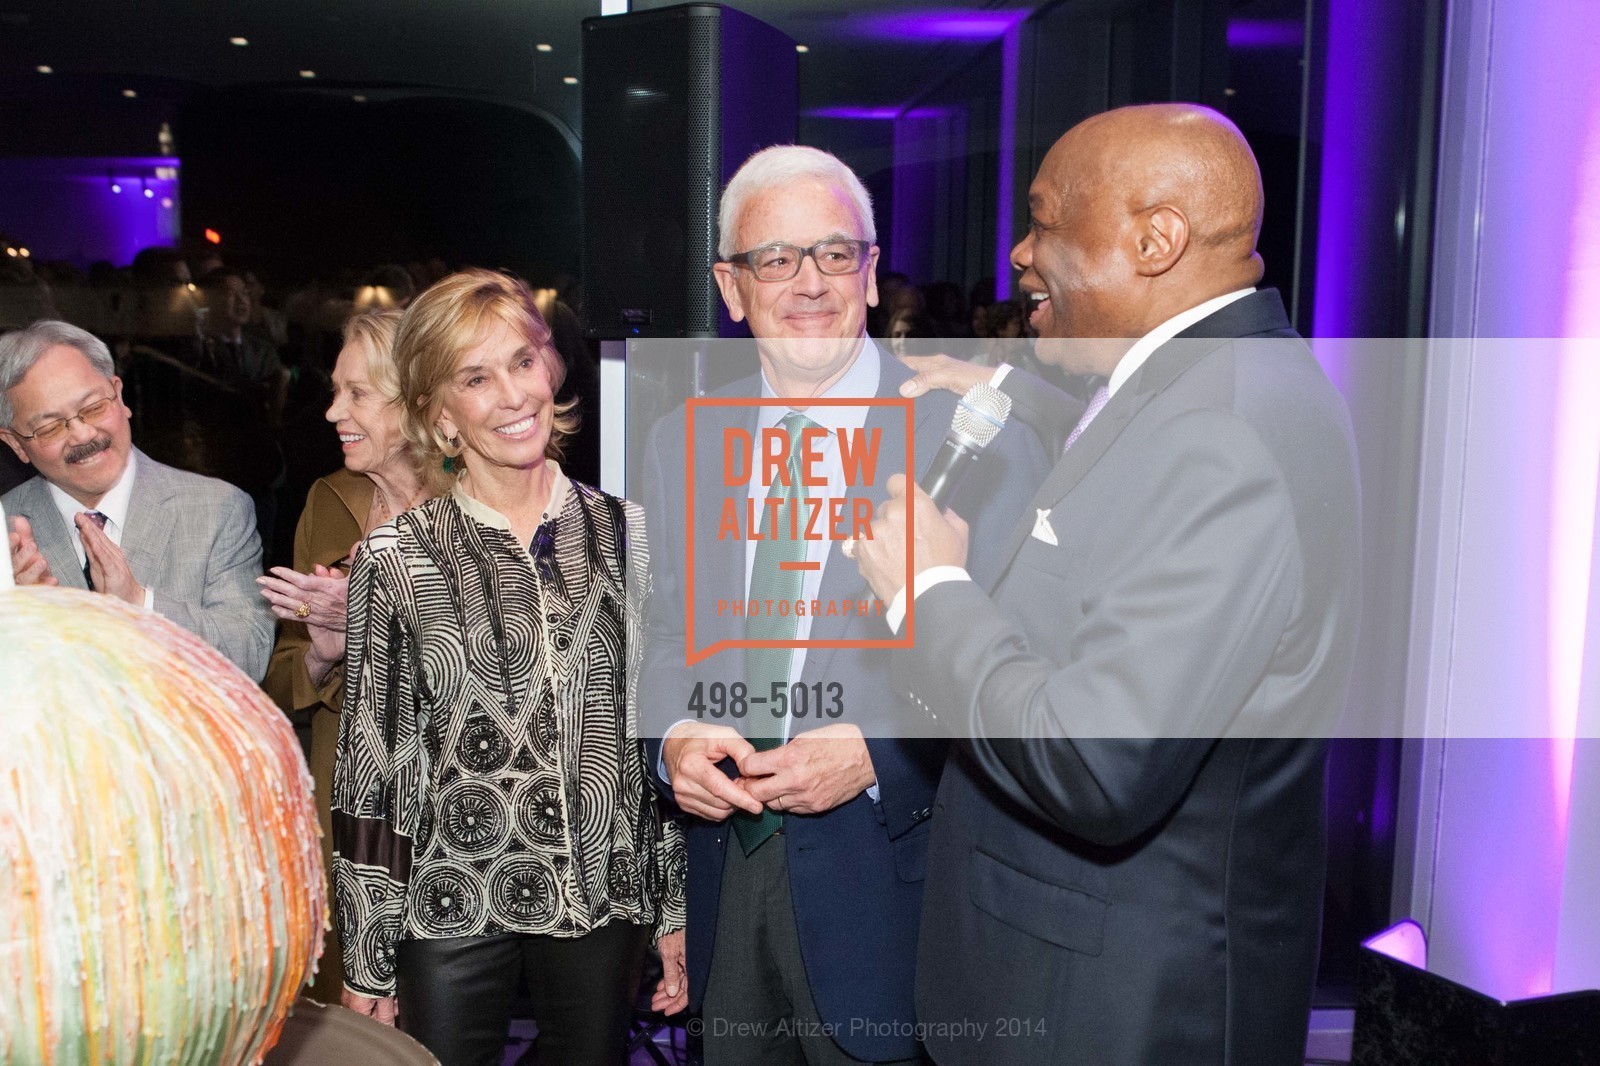 Mary Pilara, Andrew Pilara, Willie Brown, Photo #498-5013